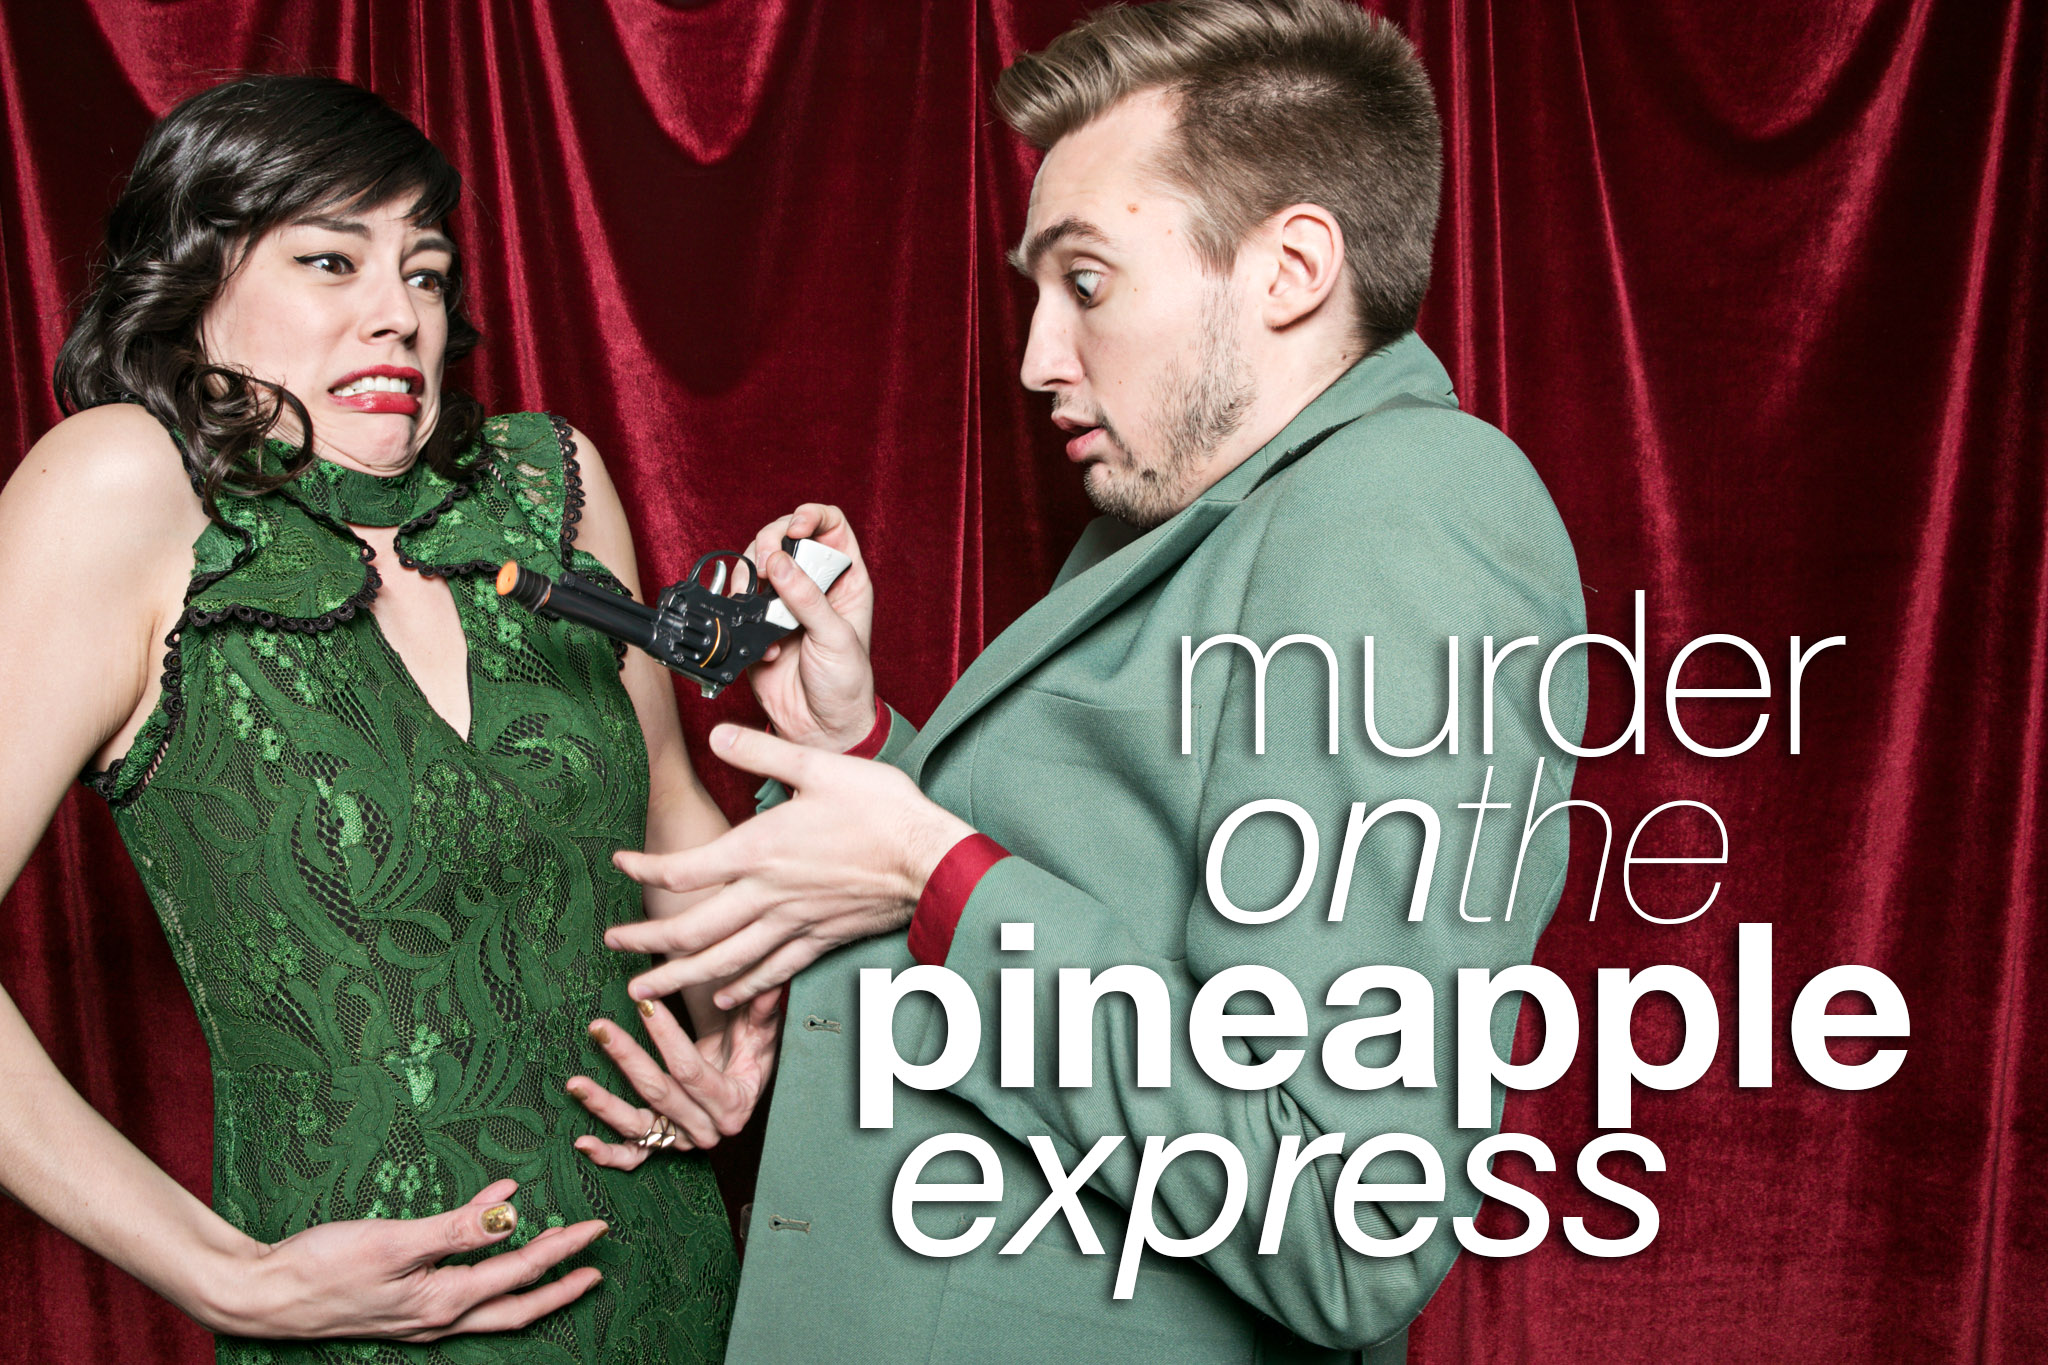 Murder on the Pineapple Express